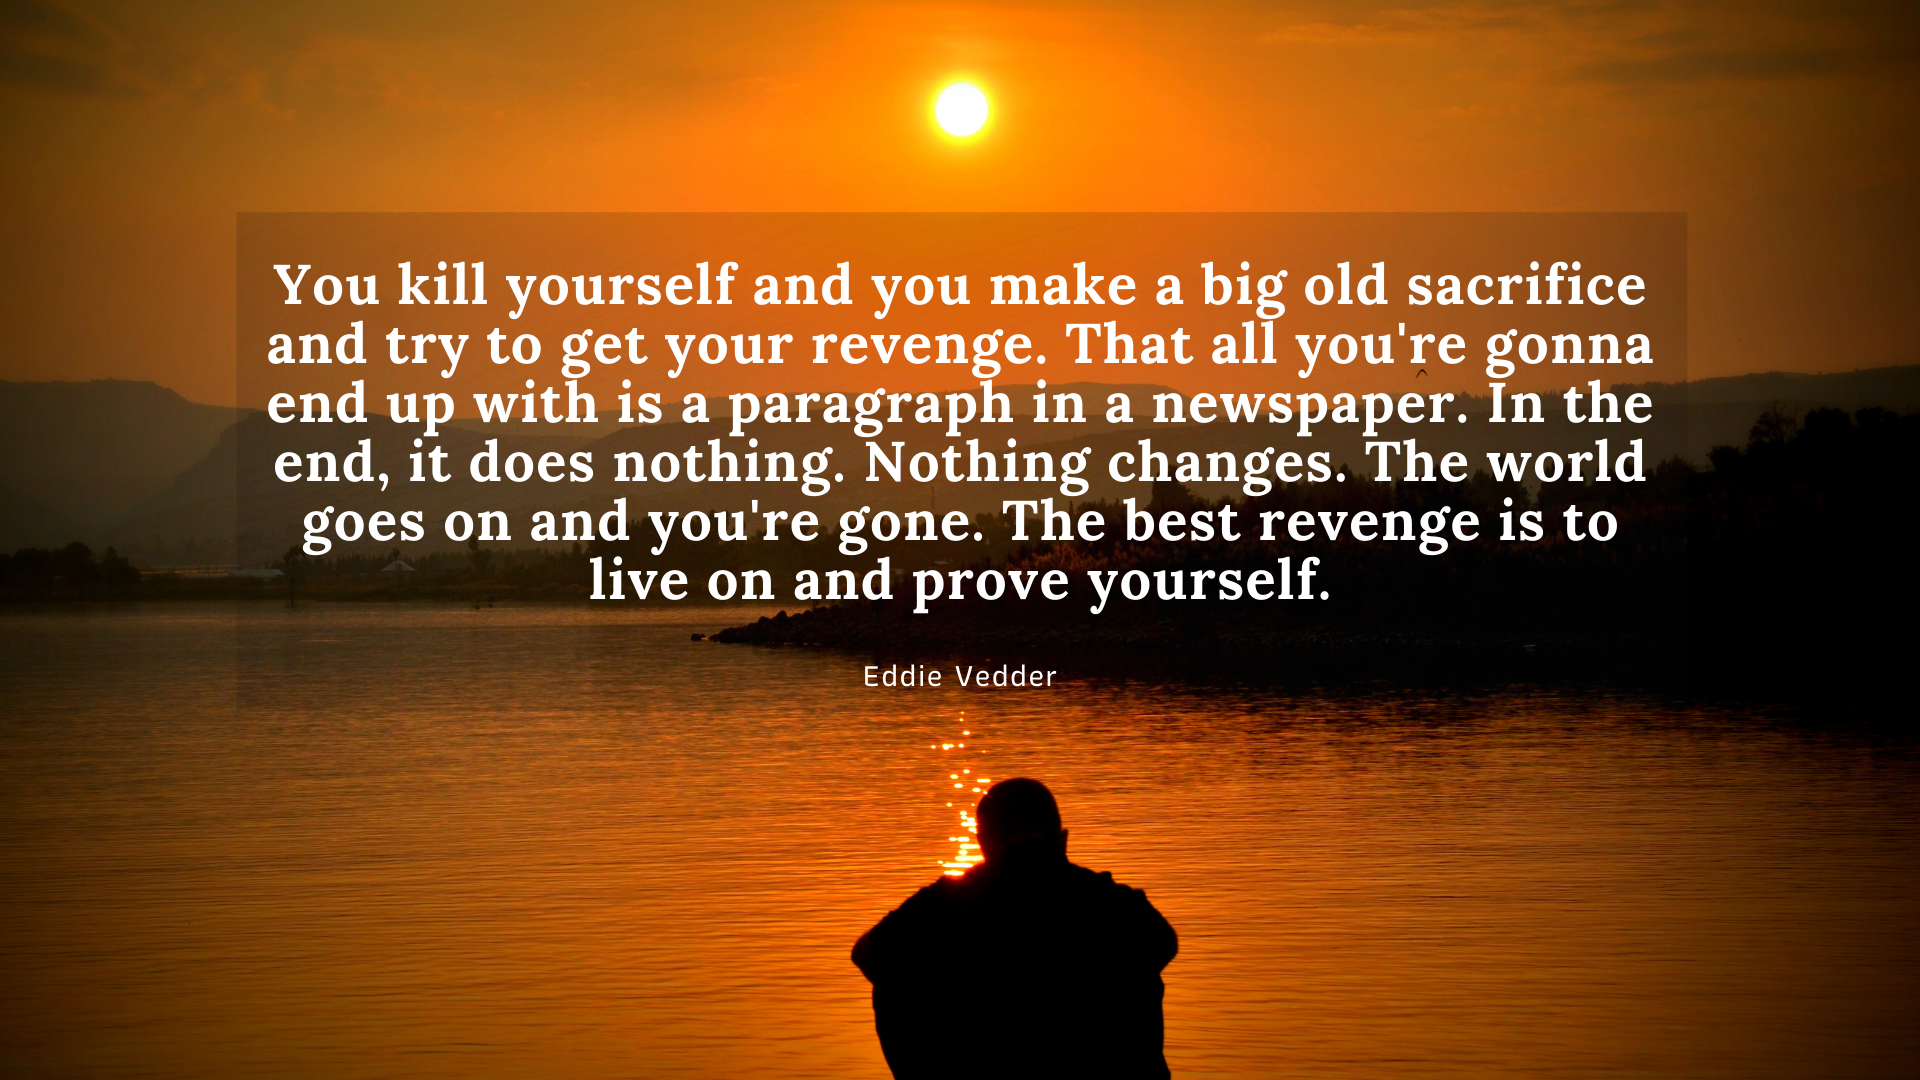 You kill yourself and you make a big old sacrifice and try to get your revenge. That all you're gonna end up with is a paragraph in a newspaper. In the end, it does nothing. Nothing changes.The world goes on & you're gone. The best revenge is to live on & prove yourself – Eddie Vedder[1920×1080]